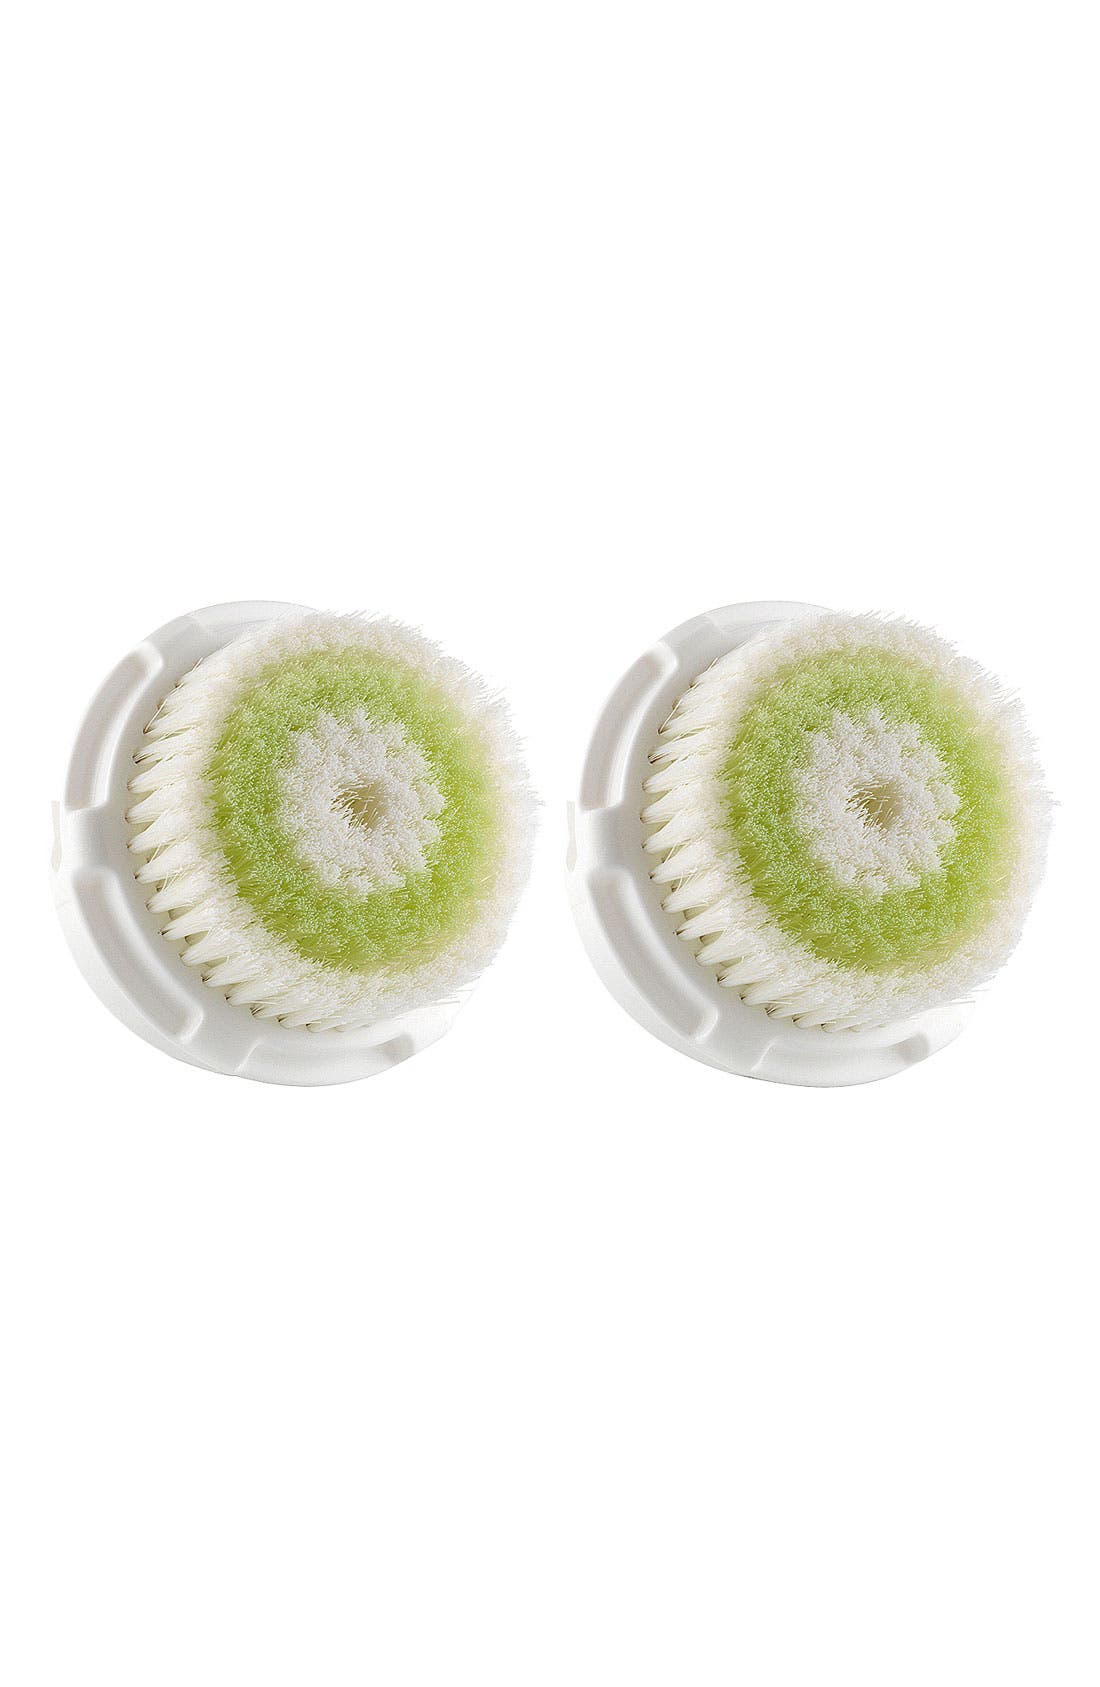 CLARISONIC Acne Cleansing Brush Heads (2-Pack)